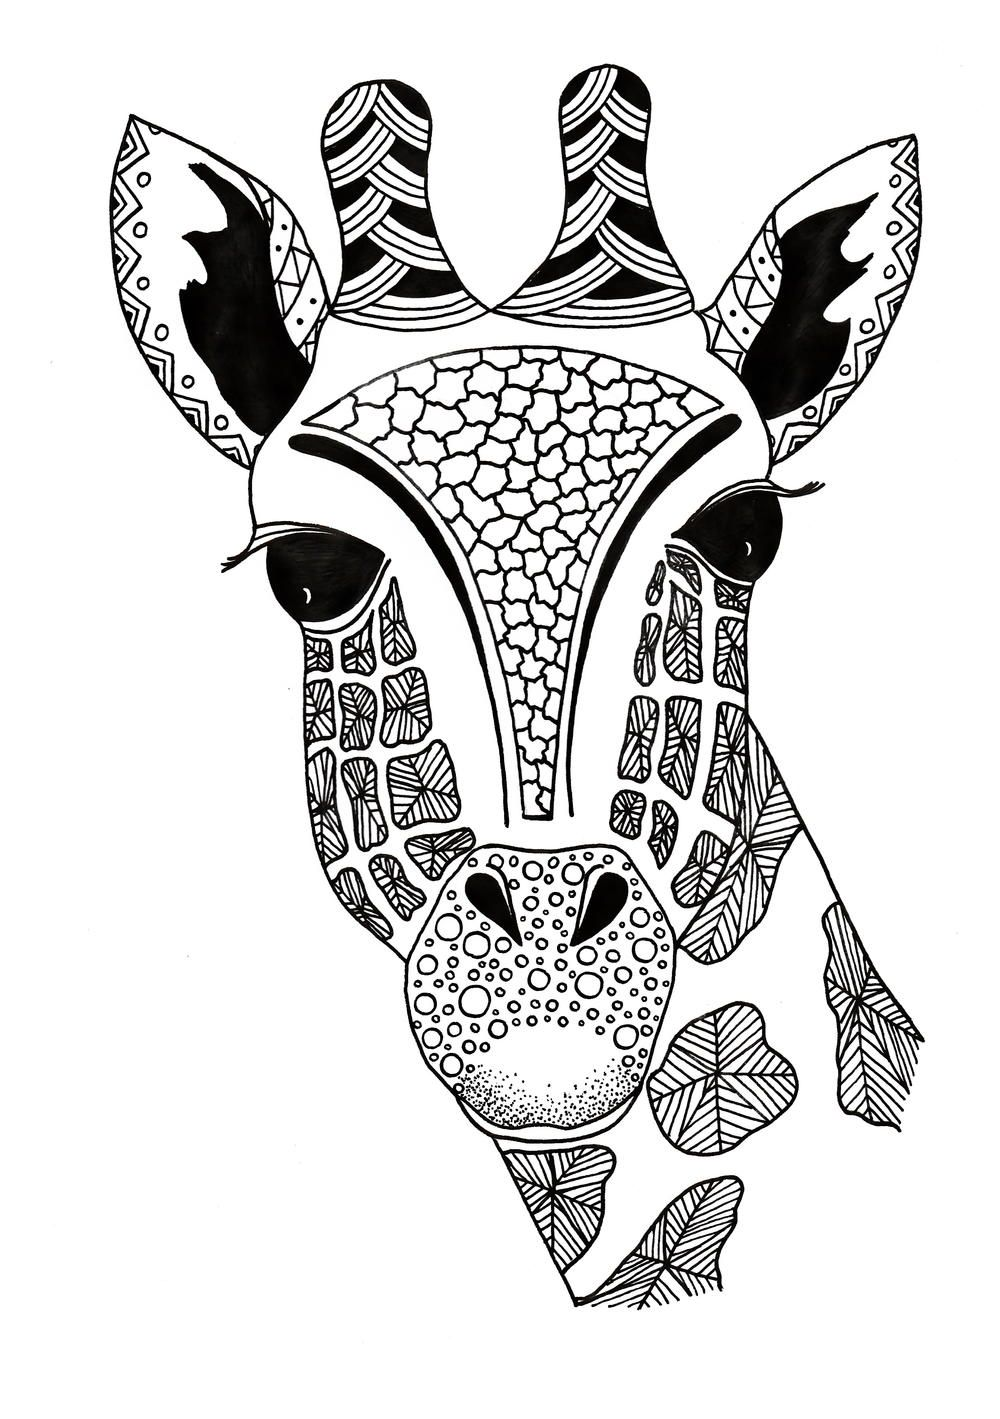 This Free Giraffe Coloring Page Is Filled With Intricate Zentangle